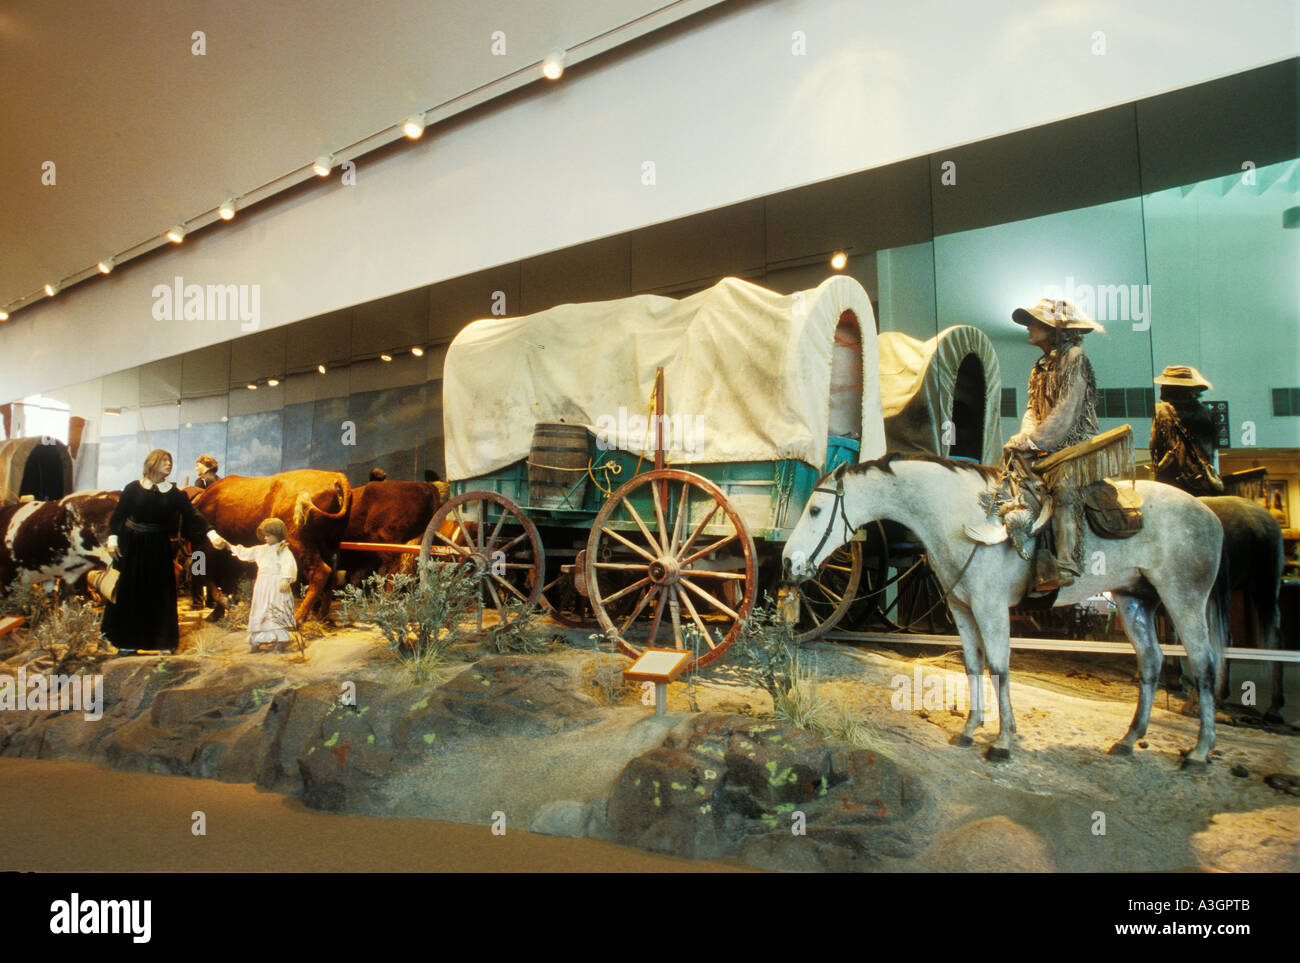 Oregon Trail Museum Stock Photos & Oregon Trail Museum Stock